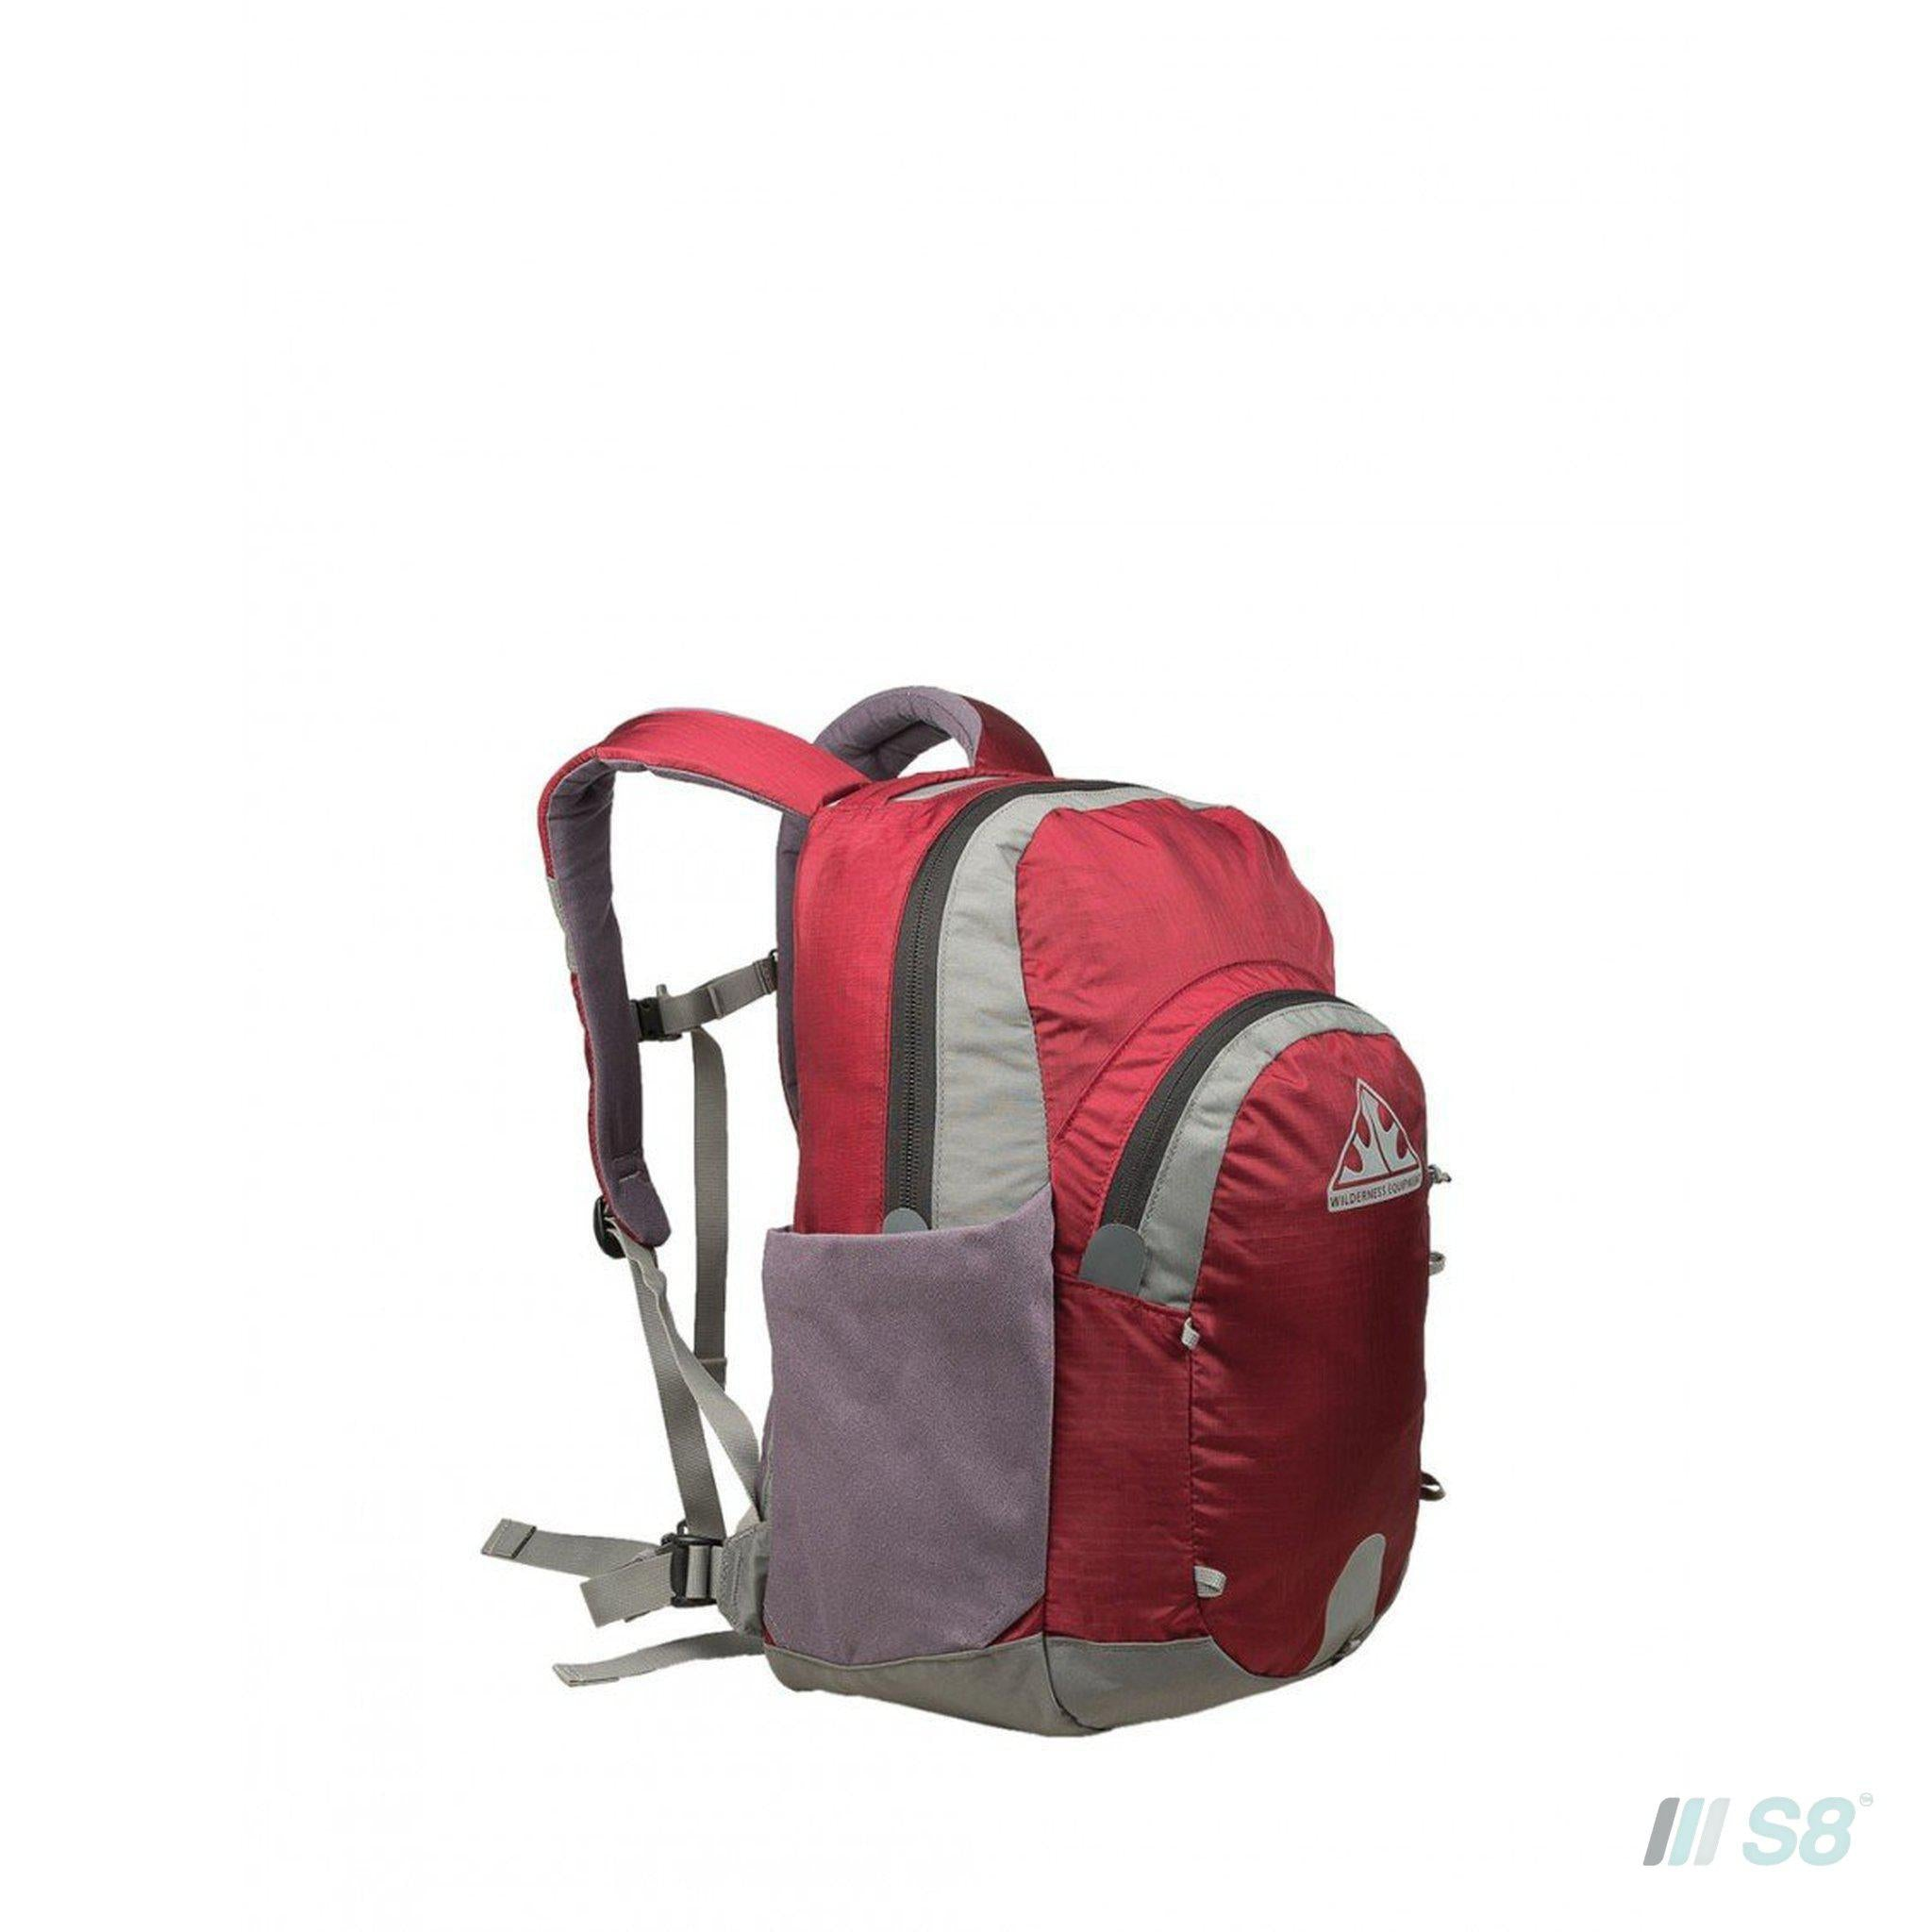 Wilderness Equipment Spark-Wilderness Equipment-S8 Products Group